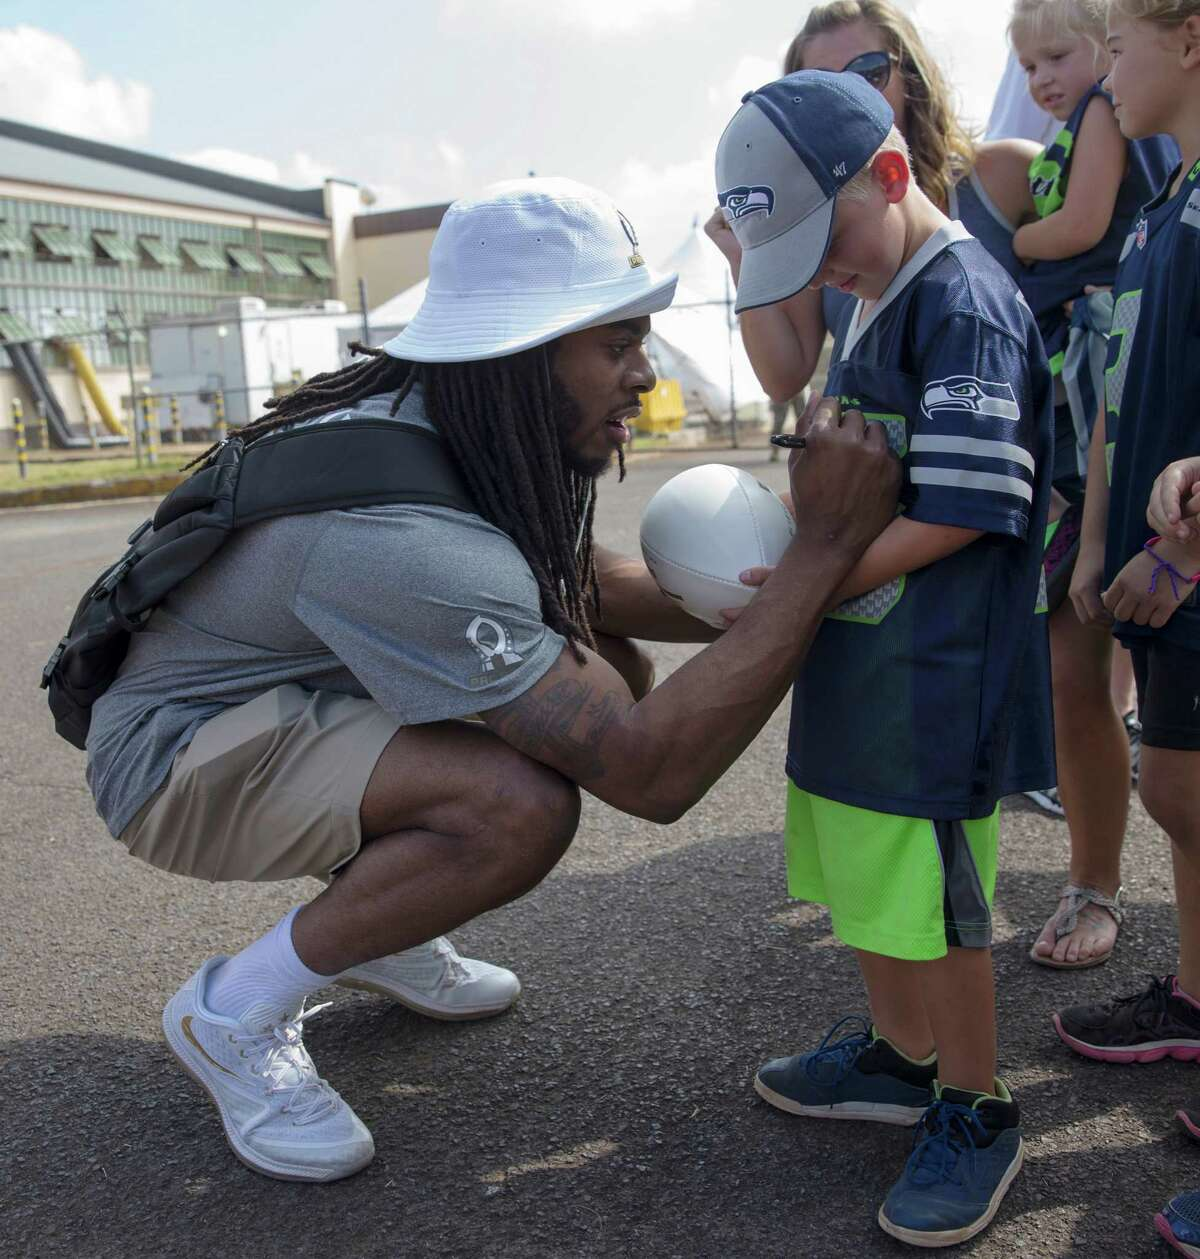 Seattle Seahawks cornerback Richard Sherman signs autographs for a young fan before the NFL football Pro Bowl draft Wednesday, Jan. 27, 2016, at Wheeler Army Airfield in Wahiawa, Hawaii. (AP Photo/Marco Garcia)